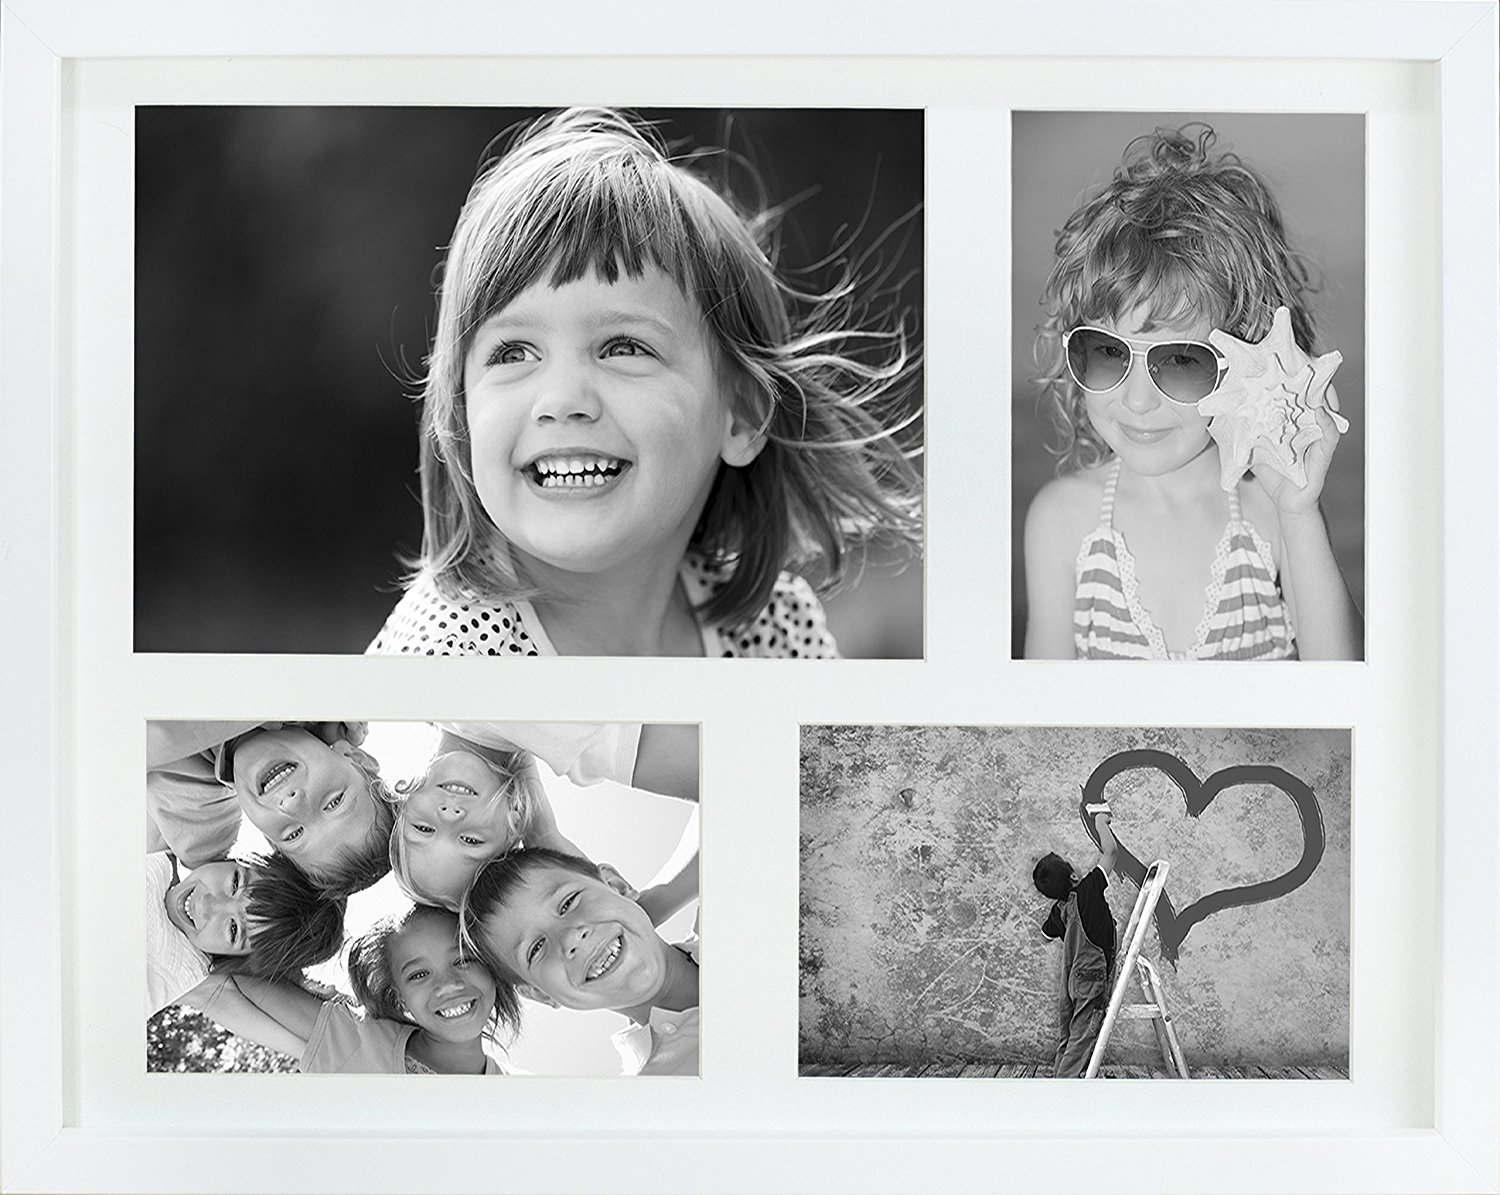 11 x 14-Inch Multi Aperture Picture Photo Frame with mount for 3 photos 4 x 6-Inch and 1 A5 photo size, WHITE